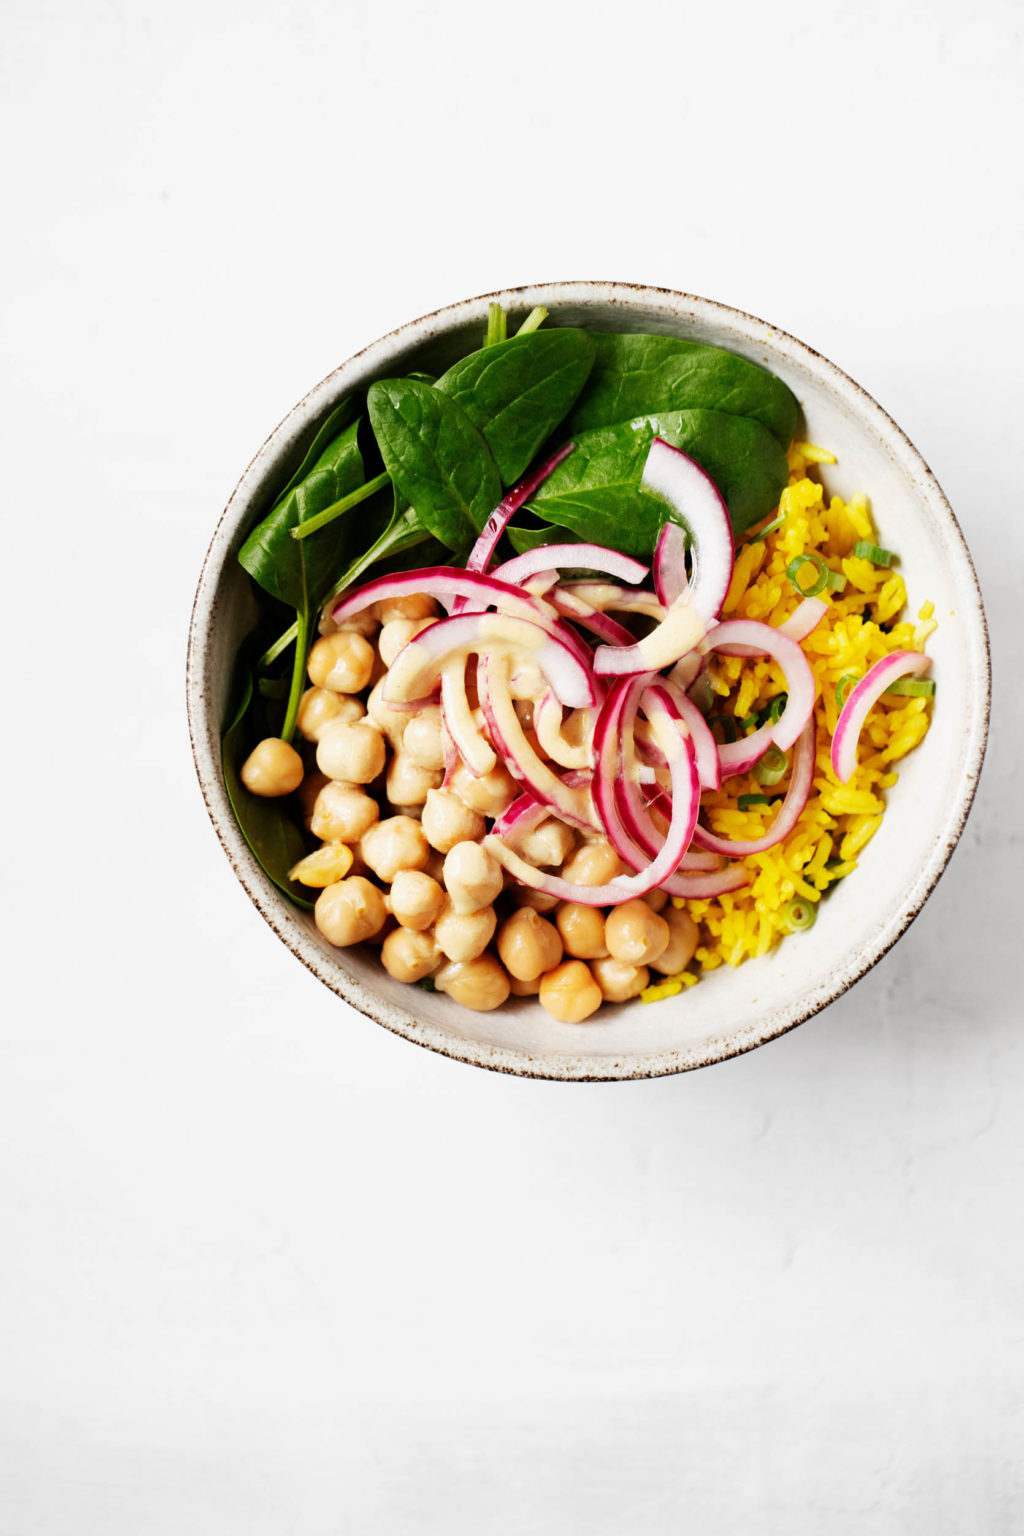 A small white bowl has been filled with rice, chickpeas, and vegetables.